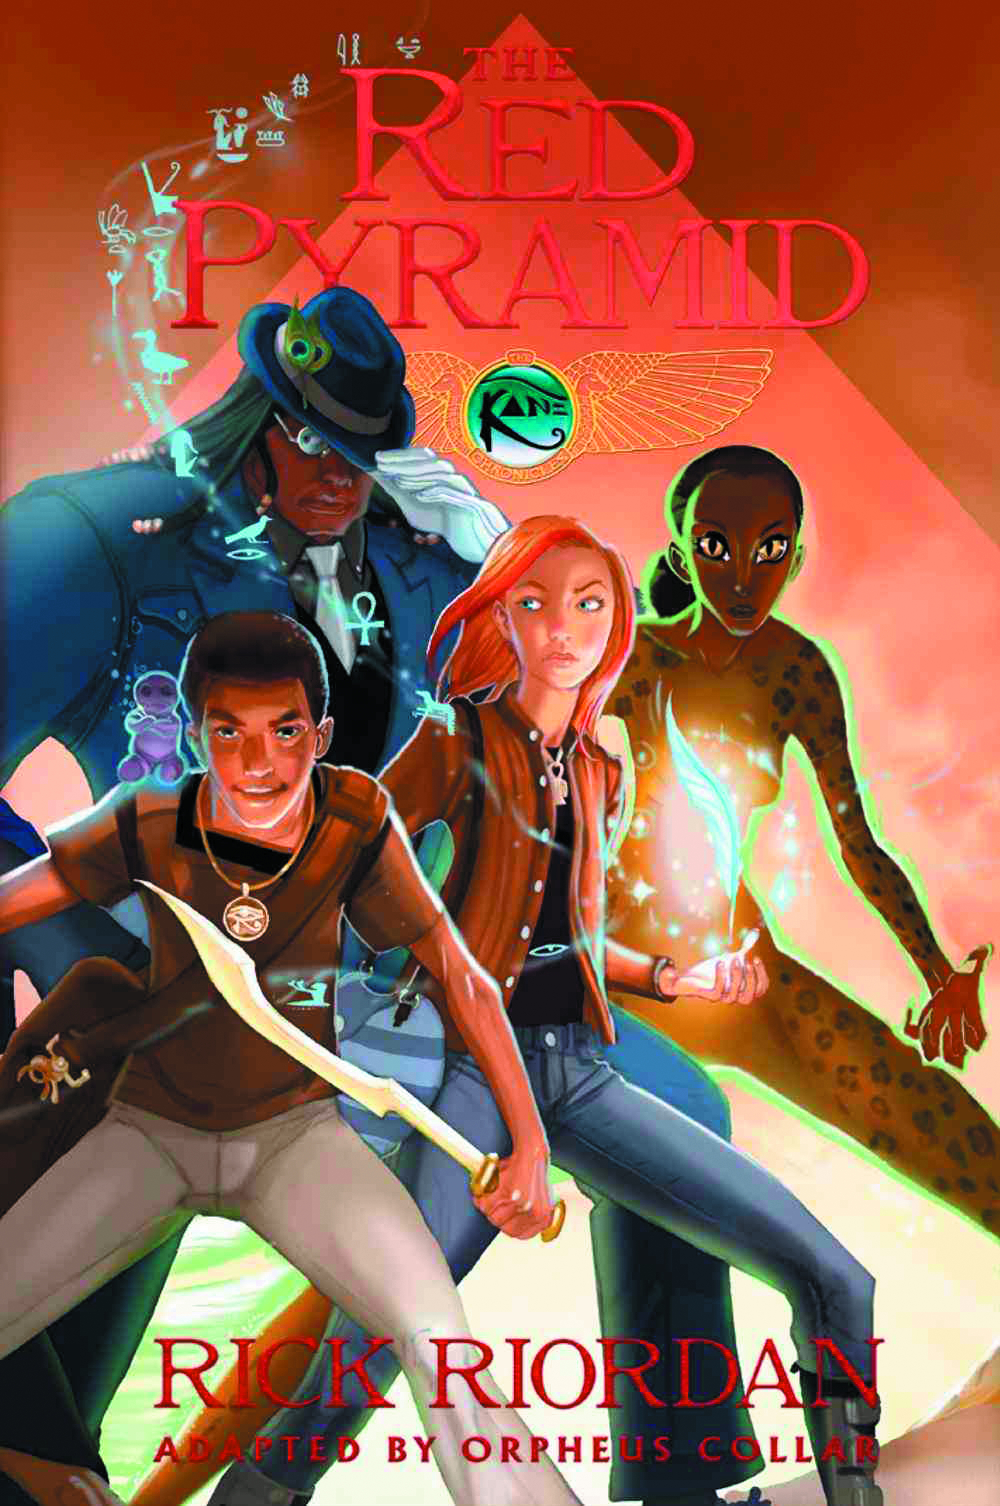 KANE CHRONICLES GN BOOK 01 RED PYRAMID